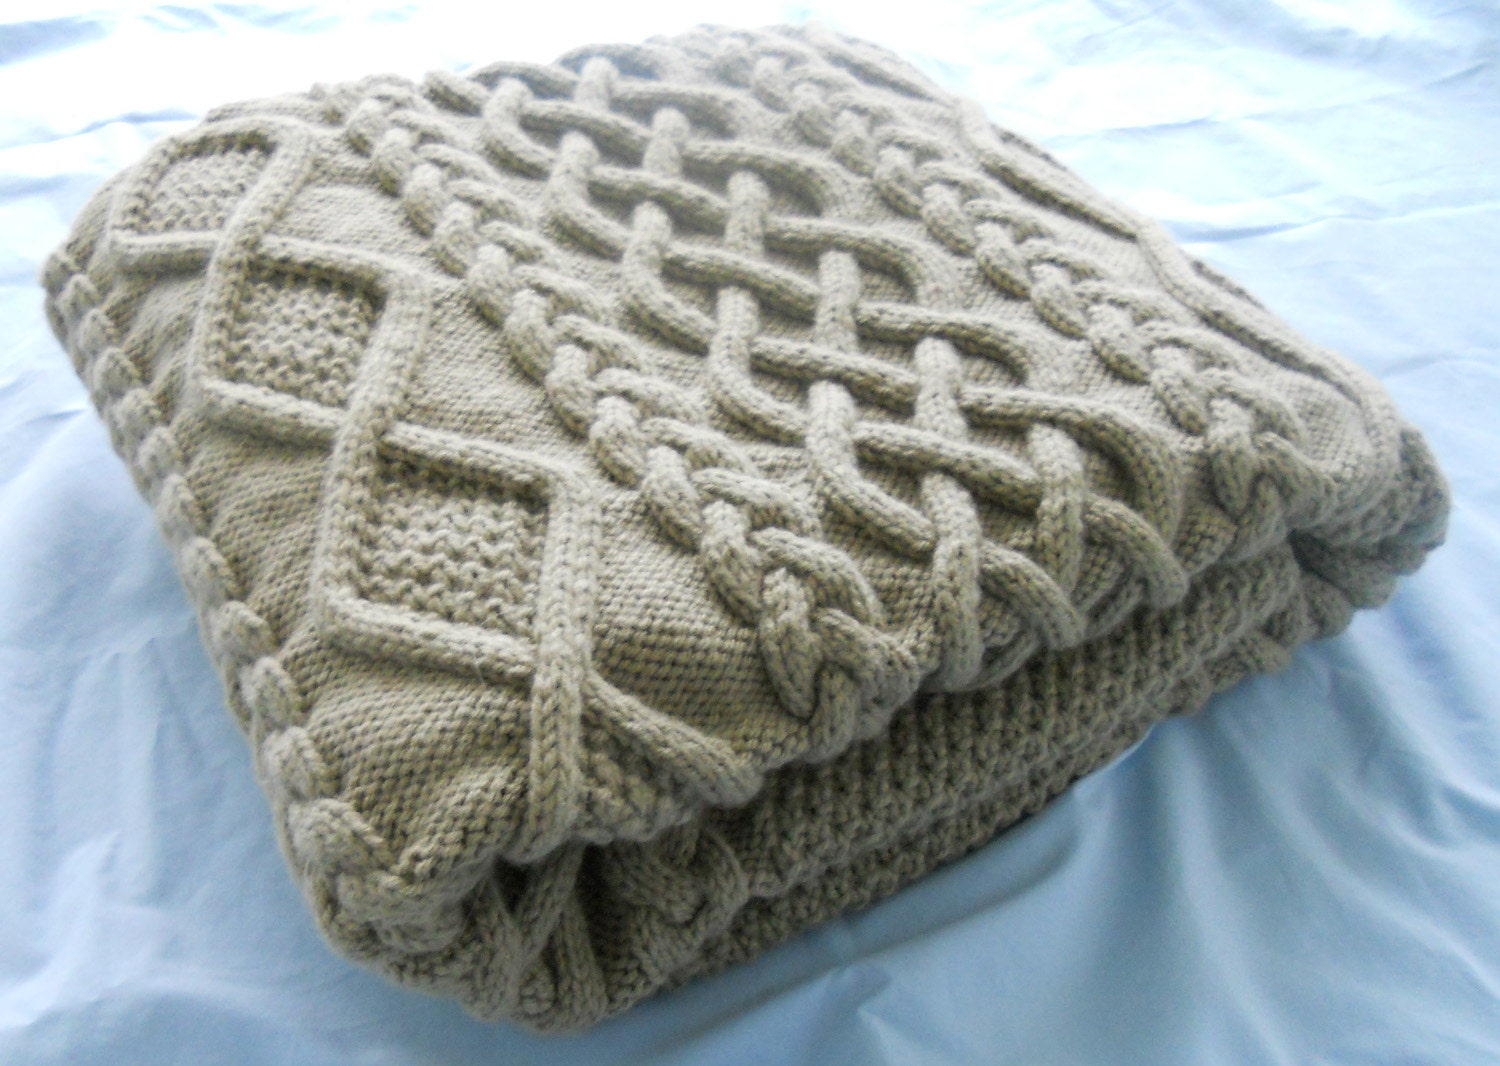 Hand Knitting Blankets : Taupe hand knit blanket